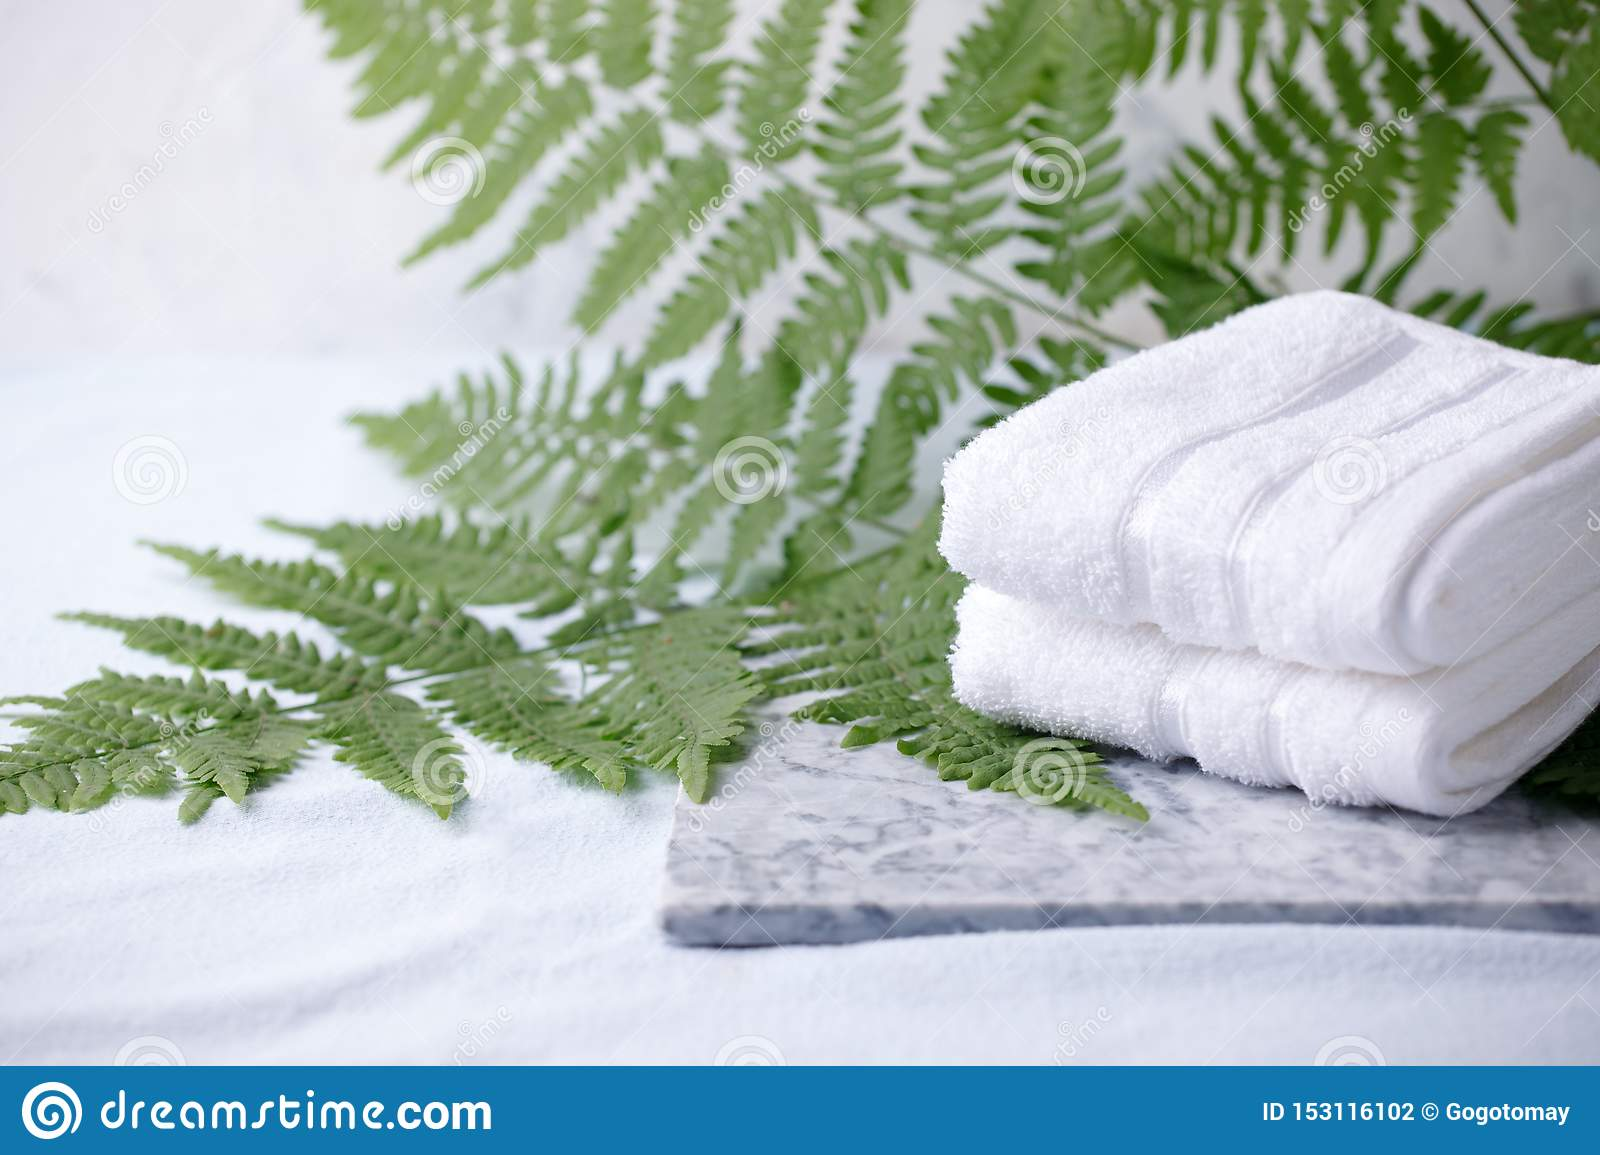 Beautiful composition of spa treatment with white cotton towels on marble plate and fern branches, minimal spa relax concept, eco